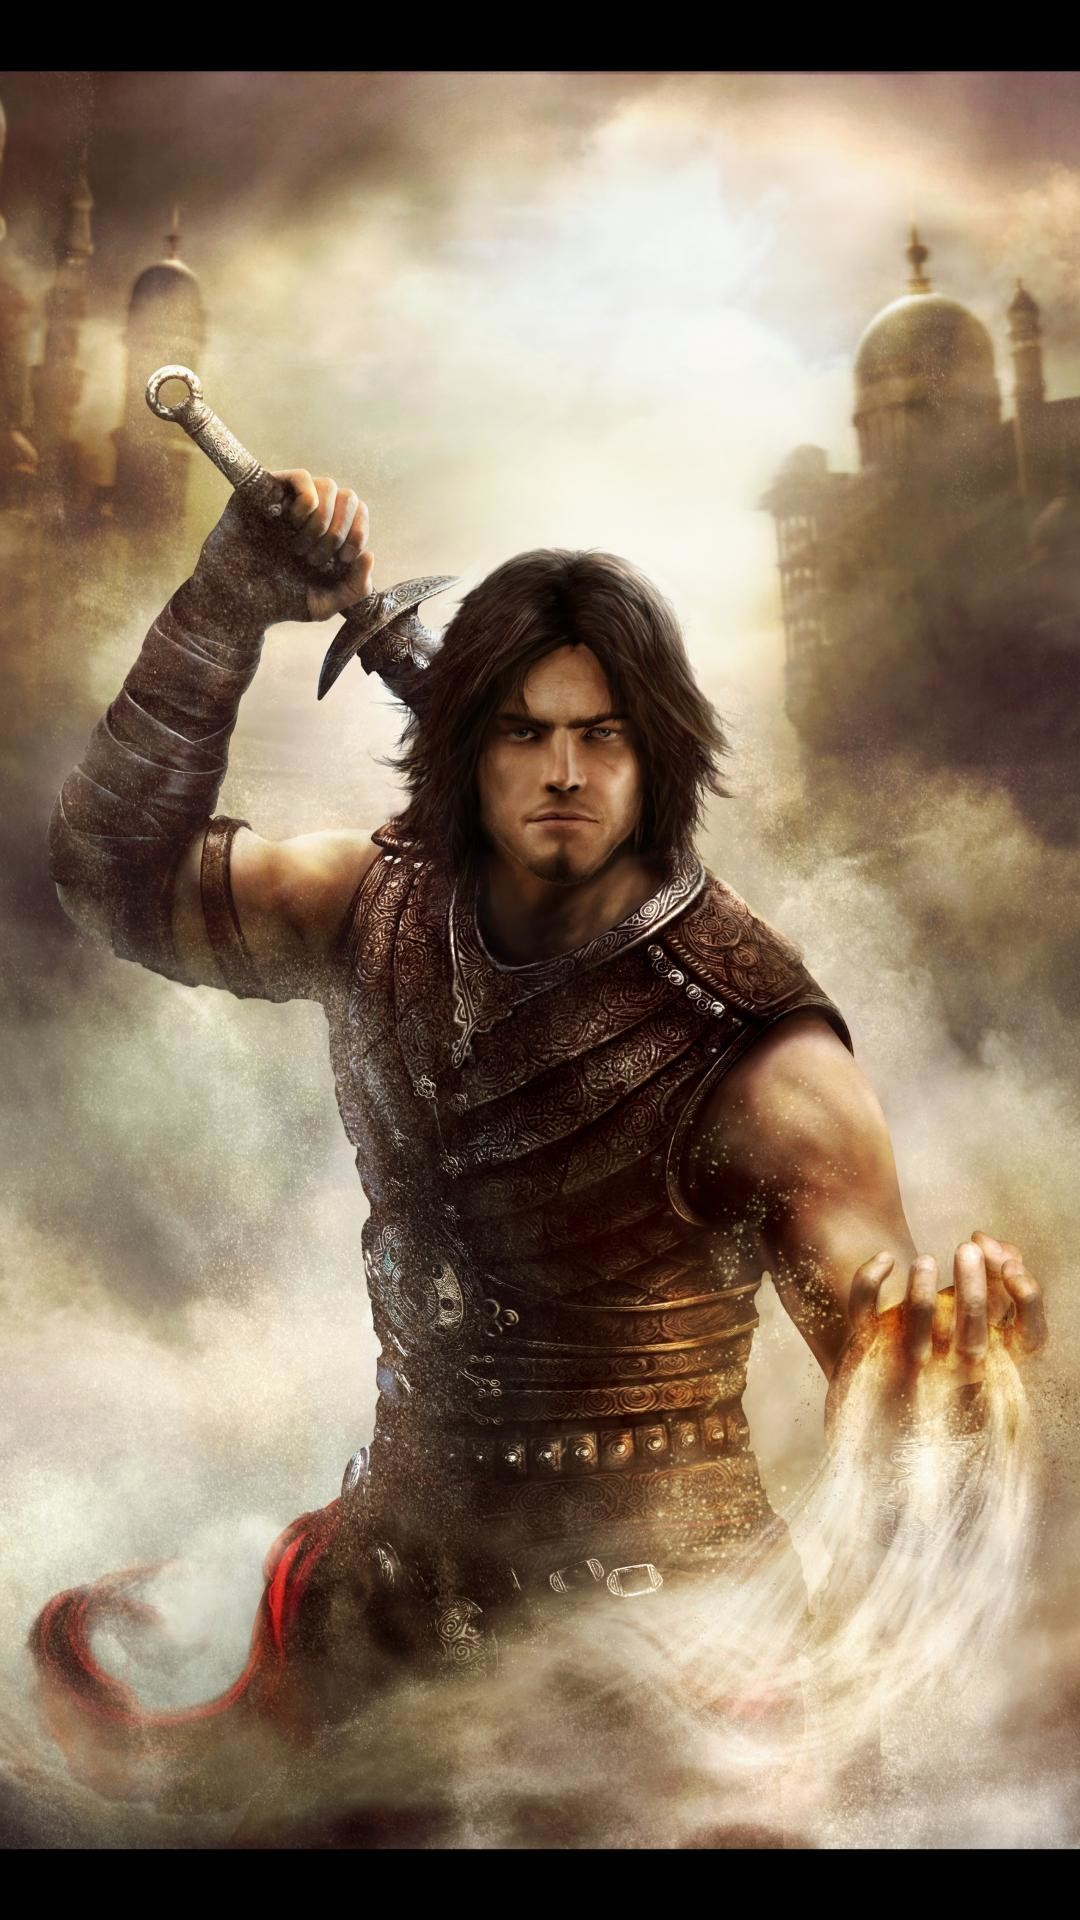 android wallpaper hd Prince of Persia wallpaper mobile 4